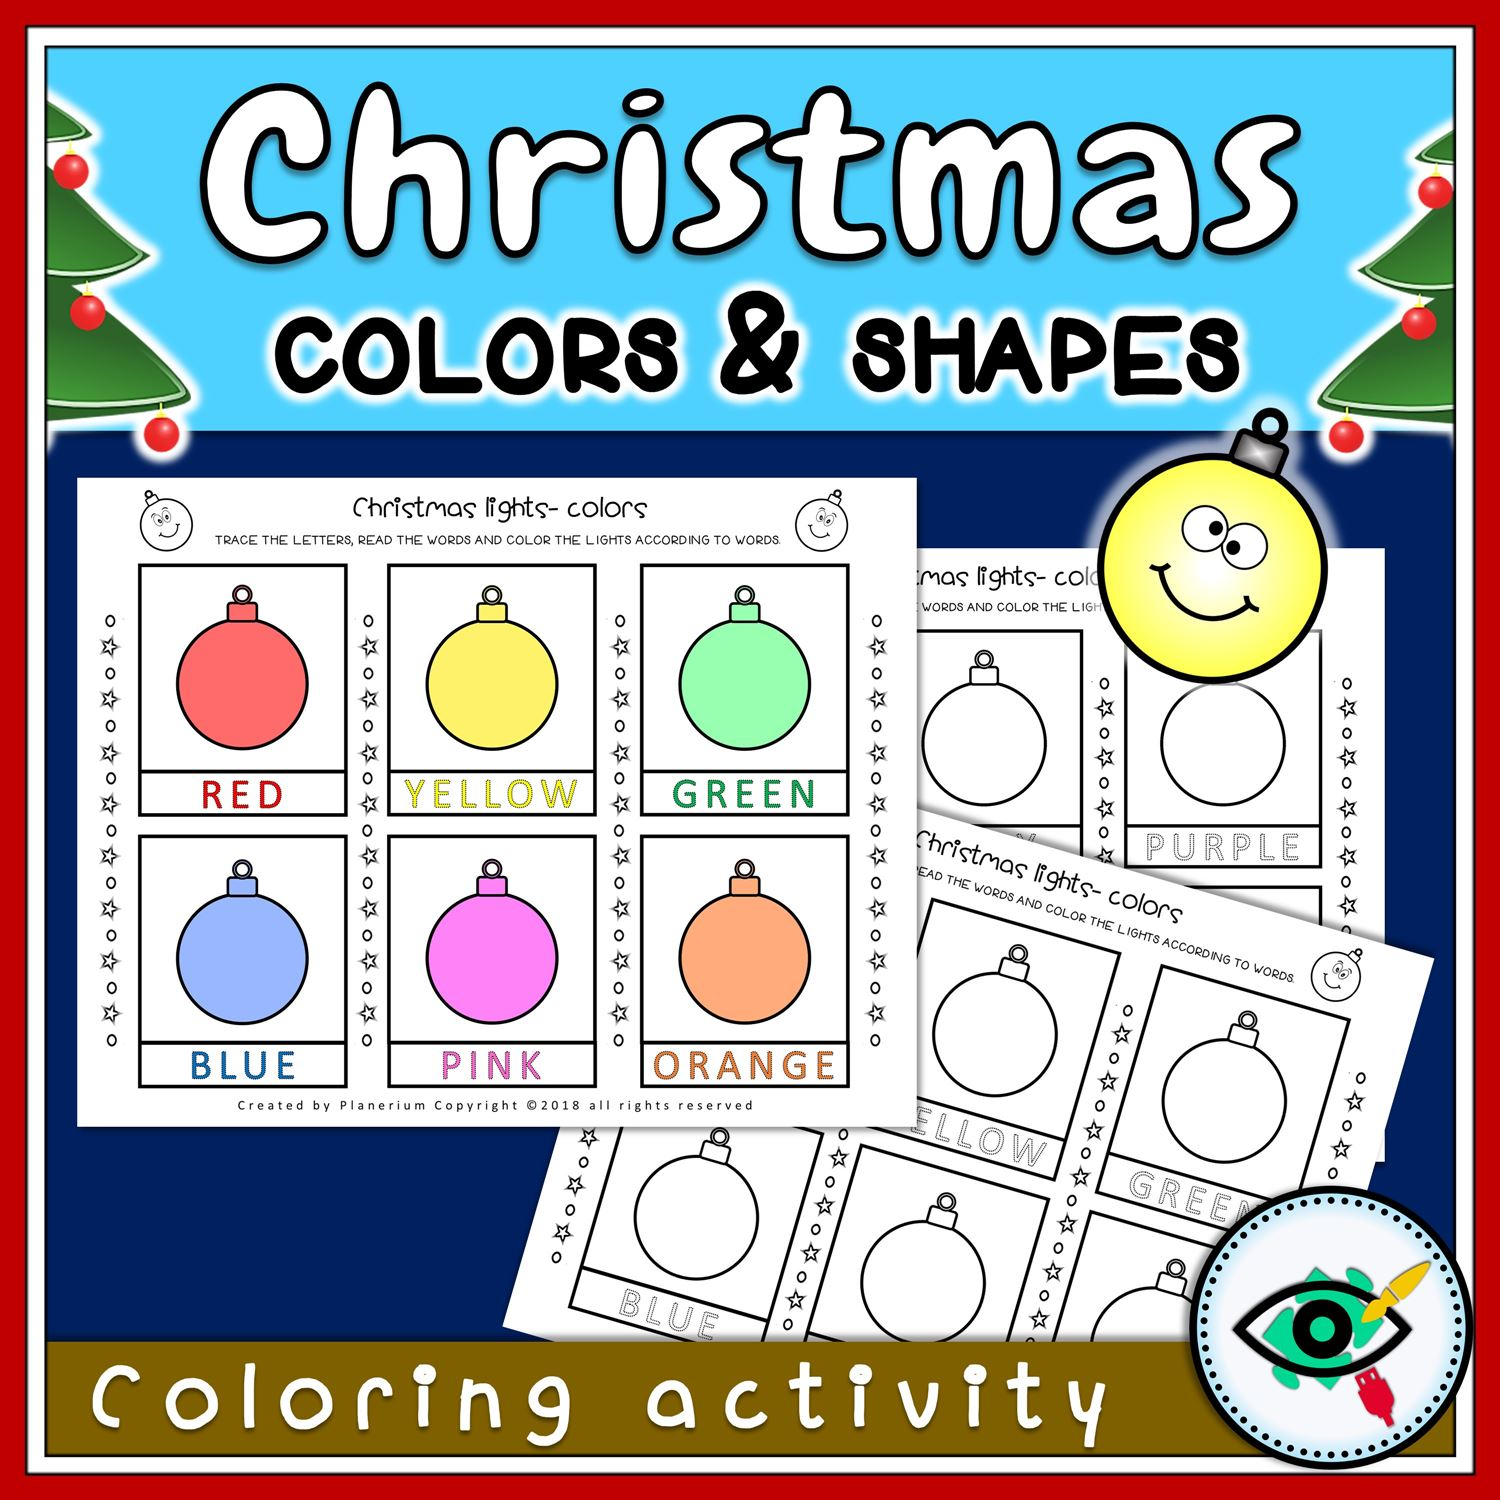 Christmas Coloring Activity - Shapes and Lights - Featured 2 | Planerium